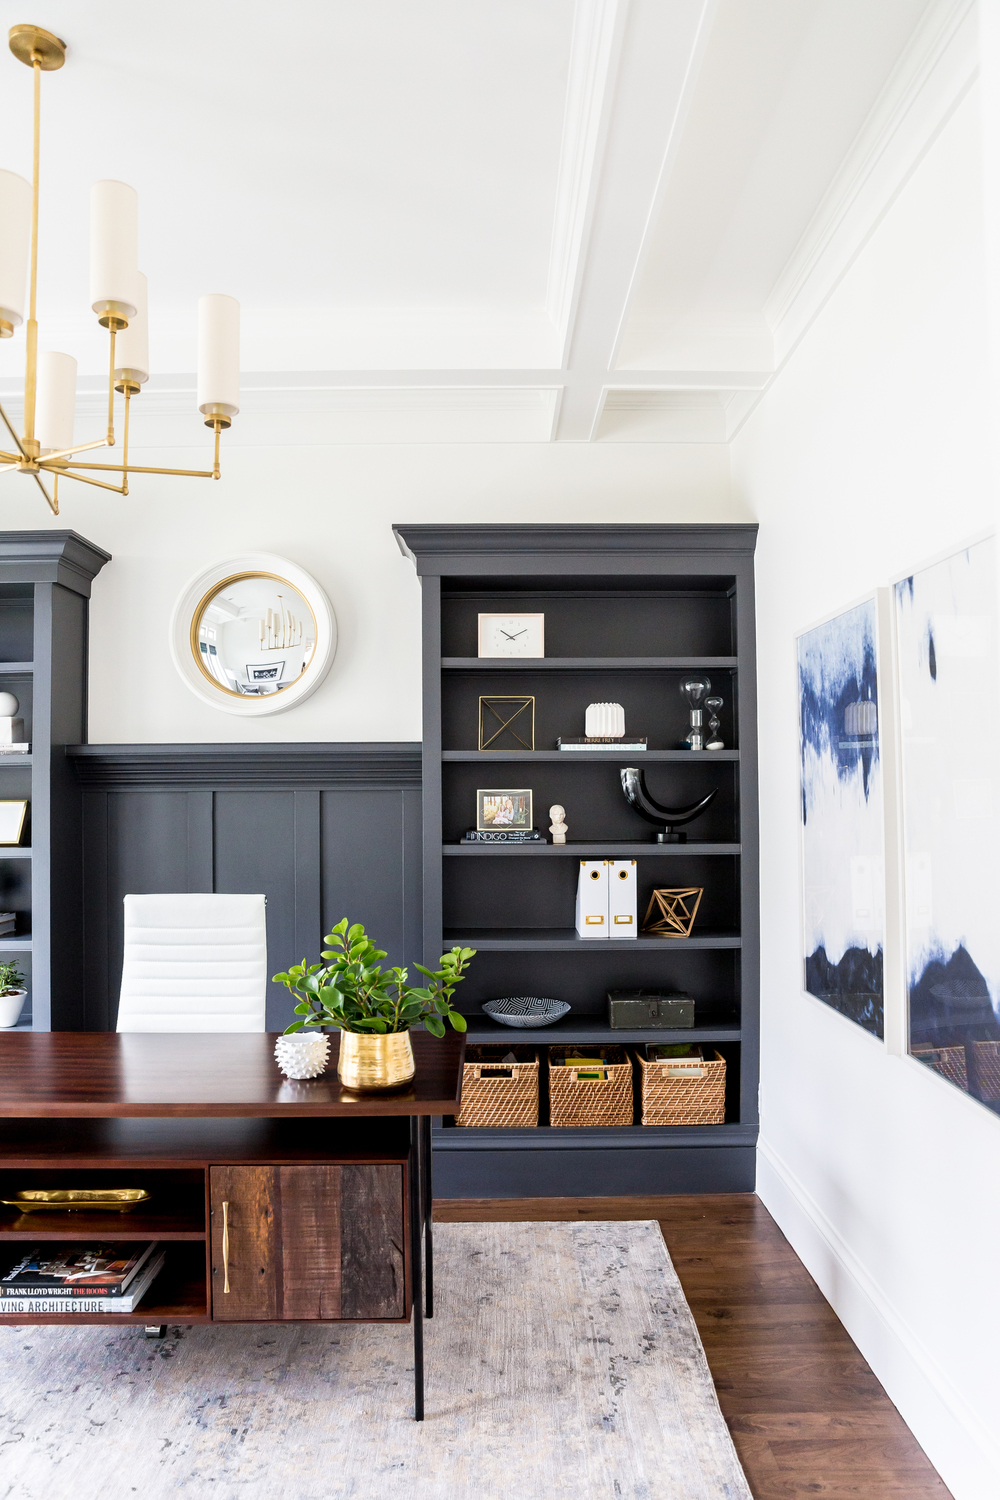 Dark+built-ins+with+white+walls+||+Studio+McGee.jpg